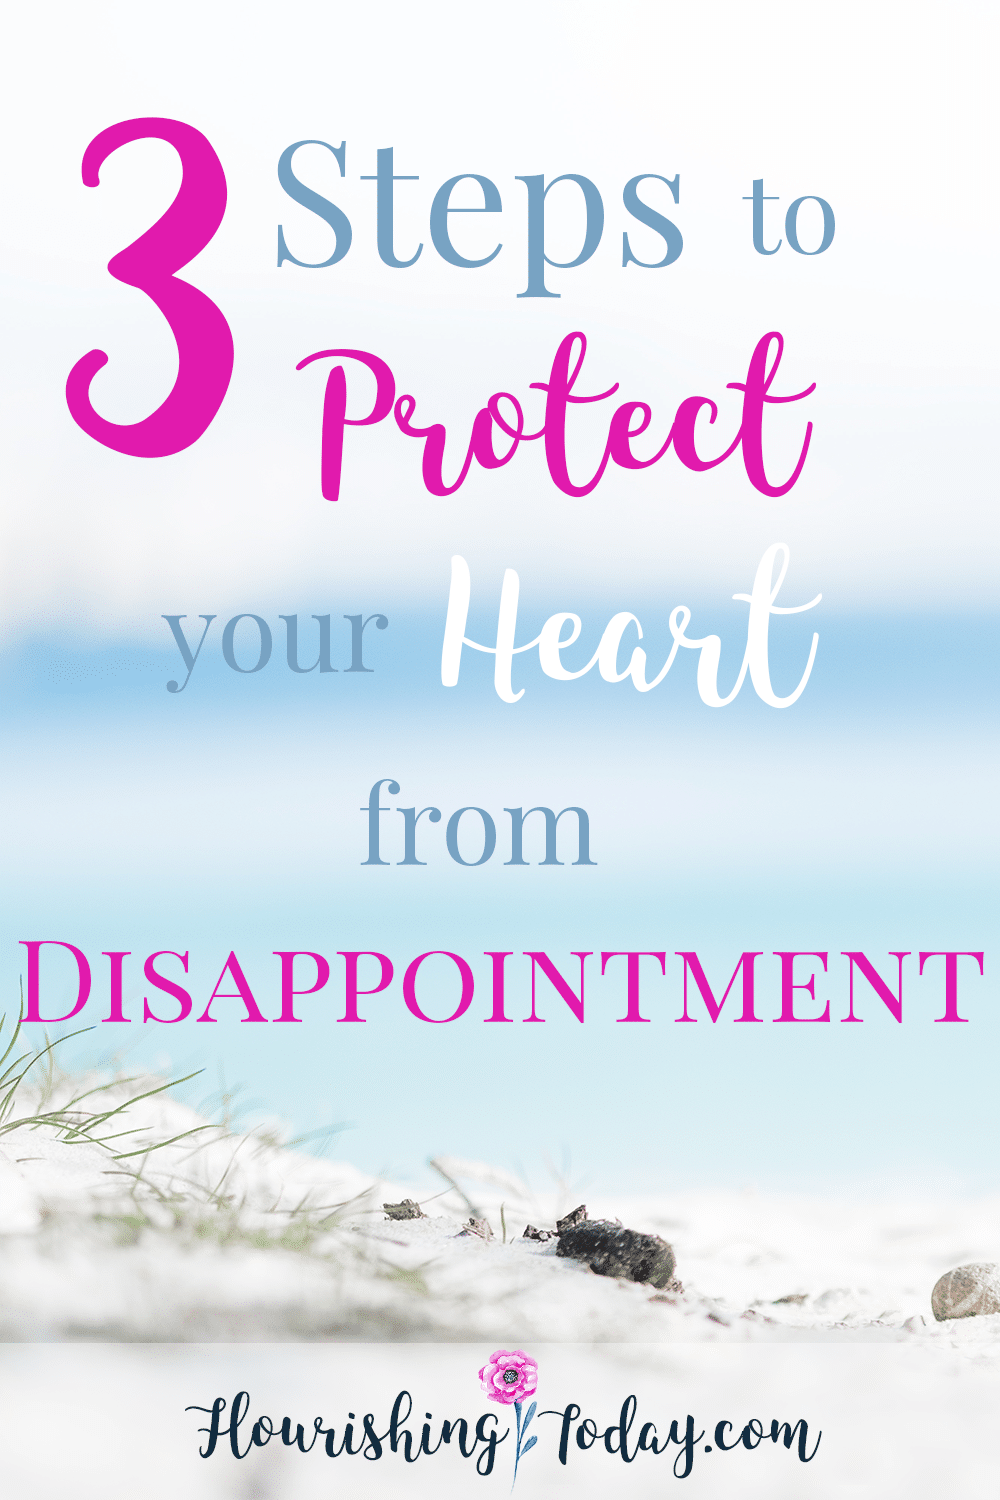 Overcoming disappointment is key to a flourishing life. Not sure how to overcome? Here are 3 steps to protect your heart from disappointment.